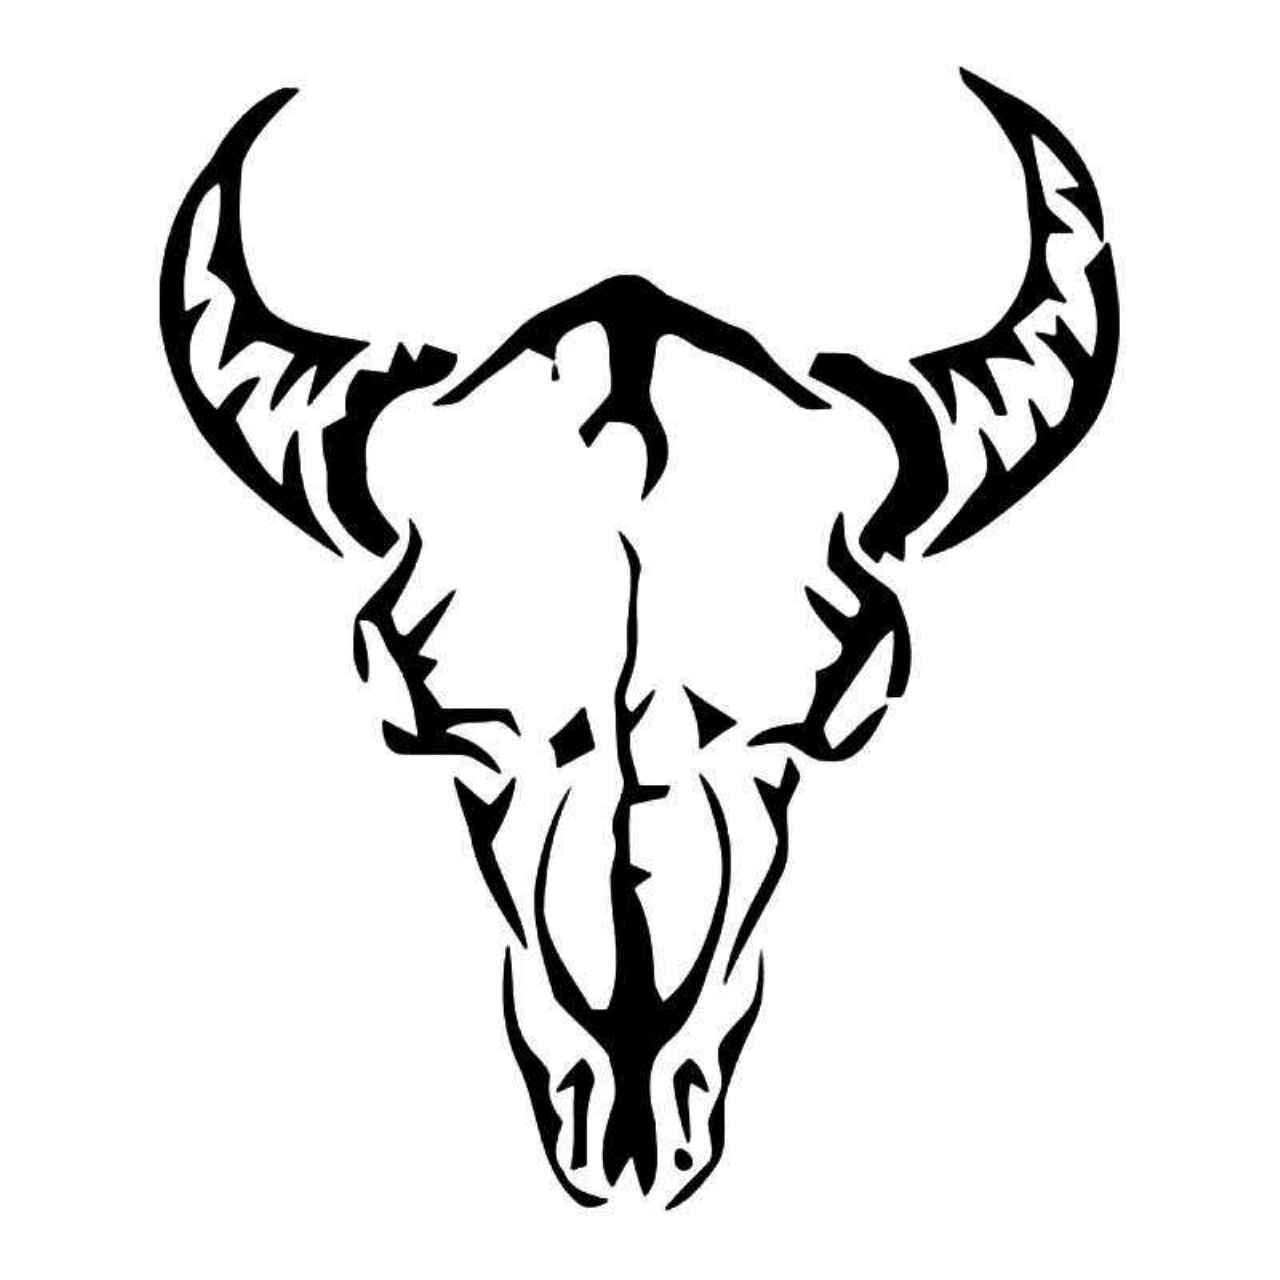 1280x1280 Tribal Longhorn Cow Skull Vinyl Decal Sticker Longhorn Cow, Cow